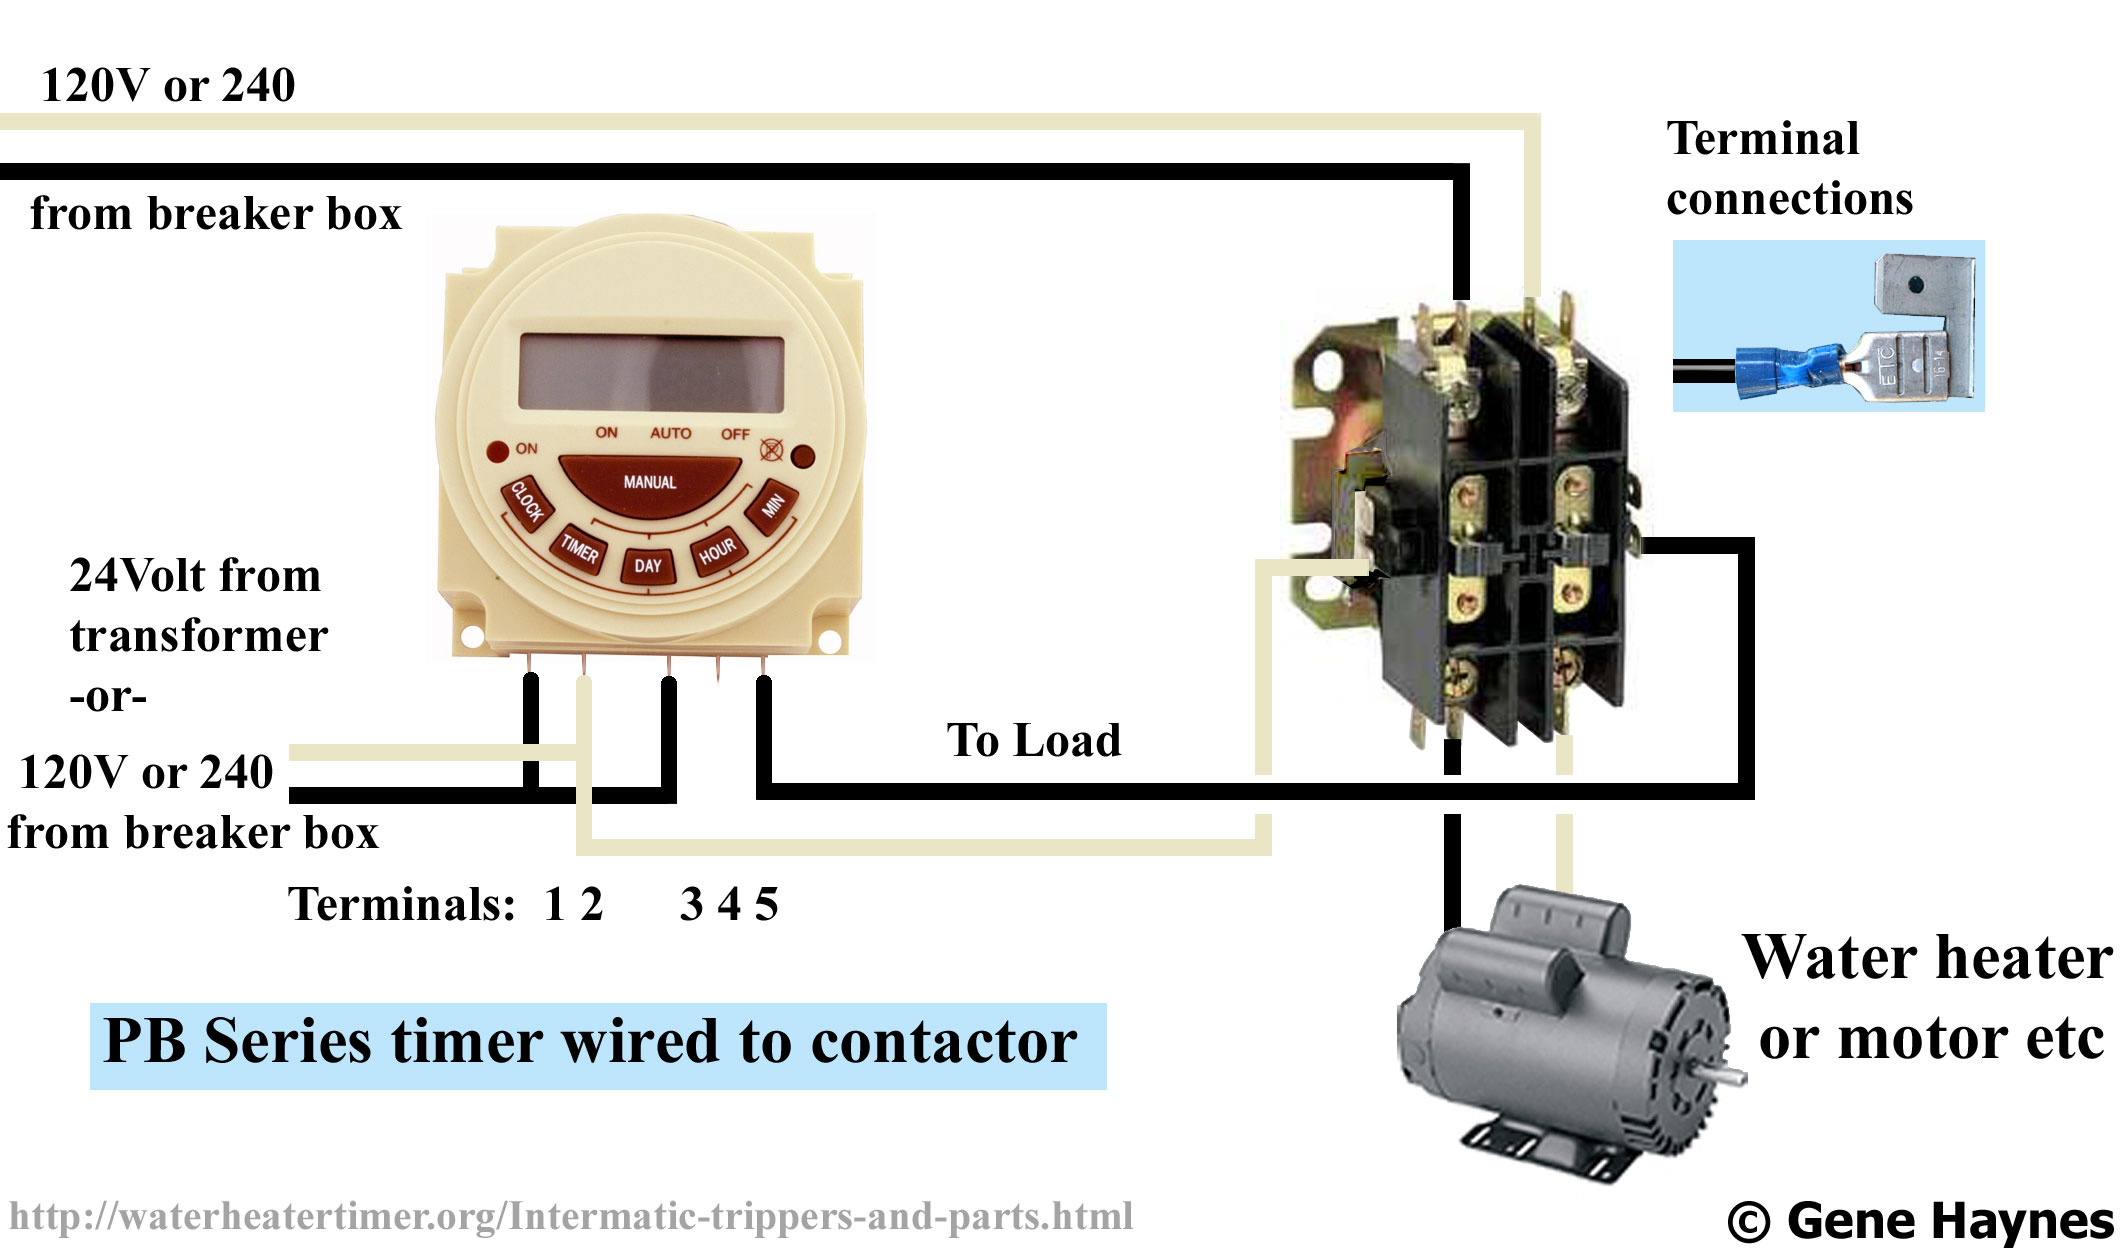 contactors rh waterheatertimer org HVAC Contactor Wiring 220 Single Phase Wiring Diagram